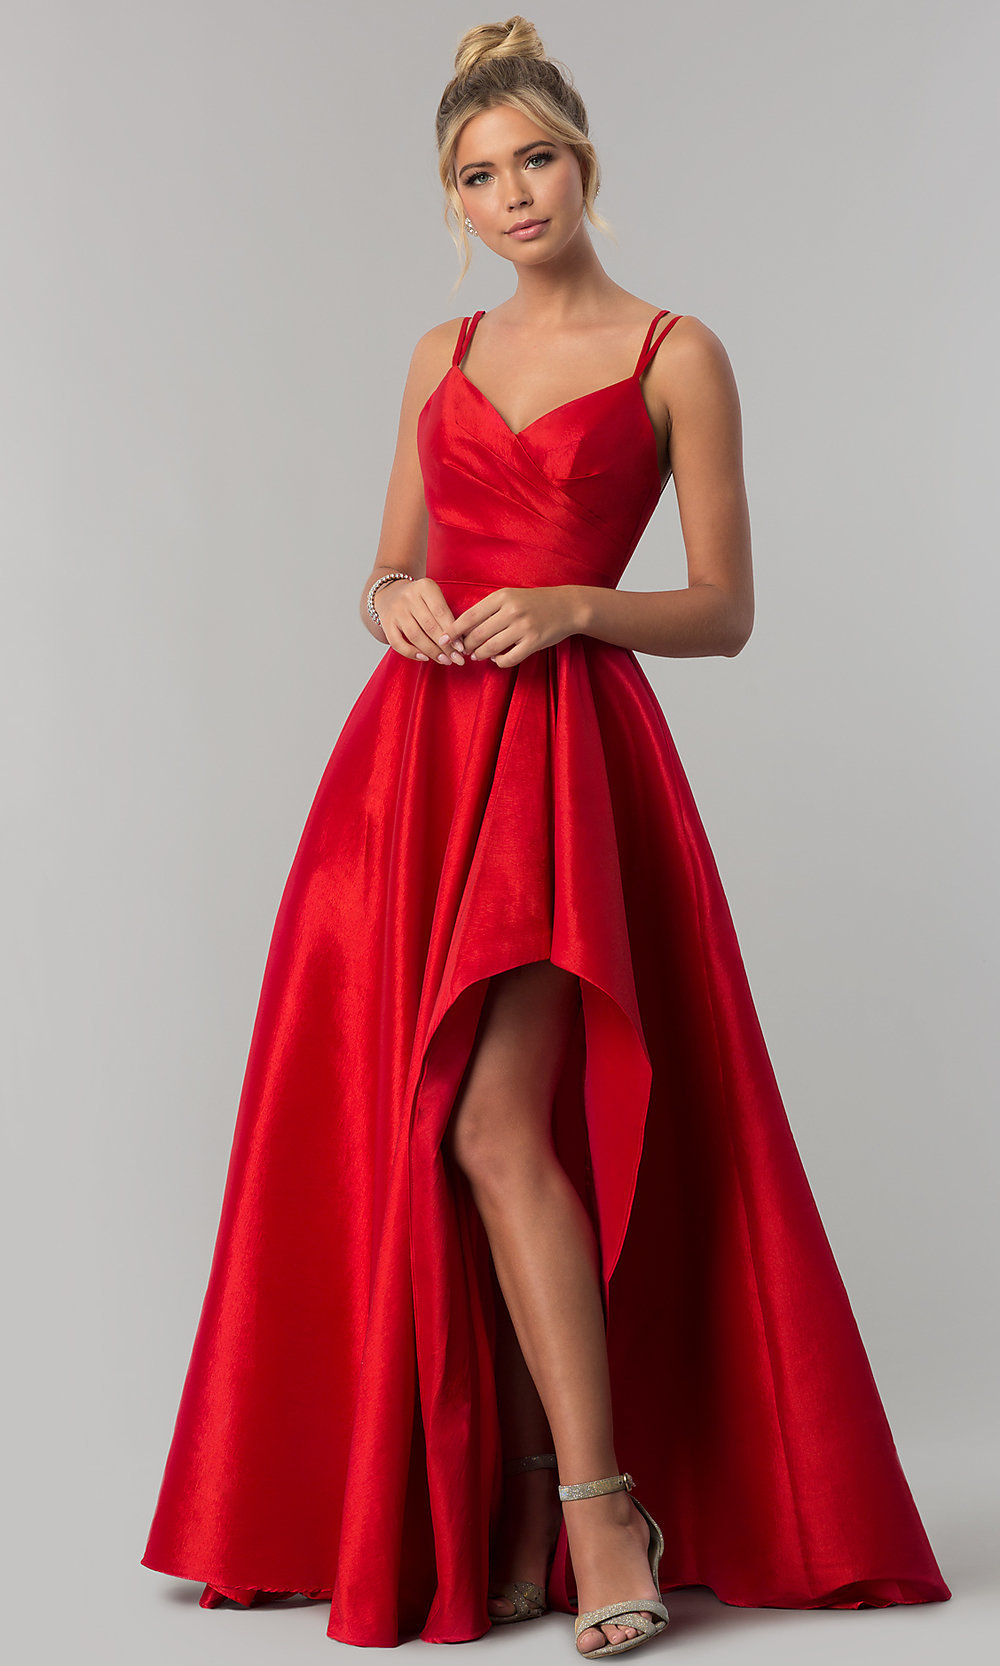 Stretch-Taffeta Long High-Low Prom Dress - PromGirlRed Dresses